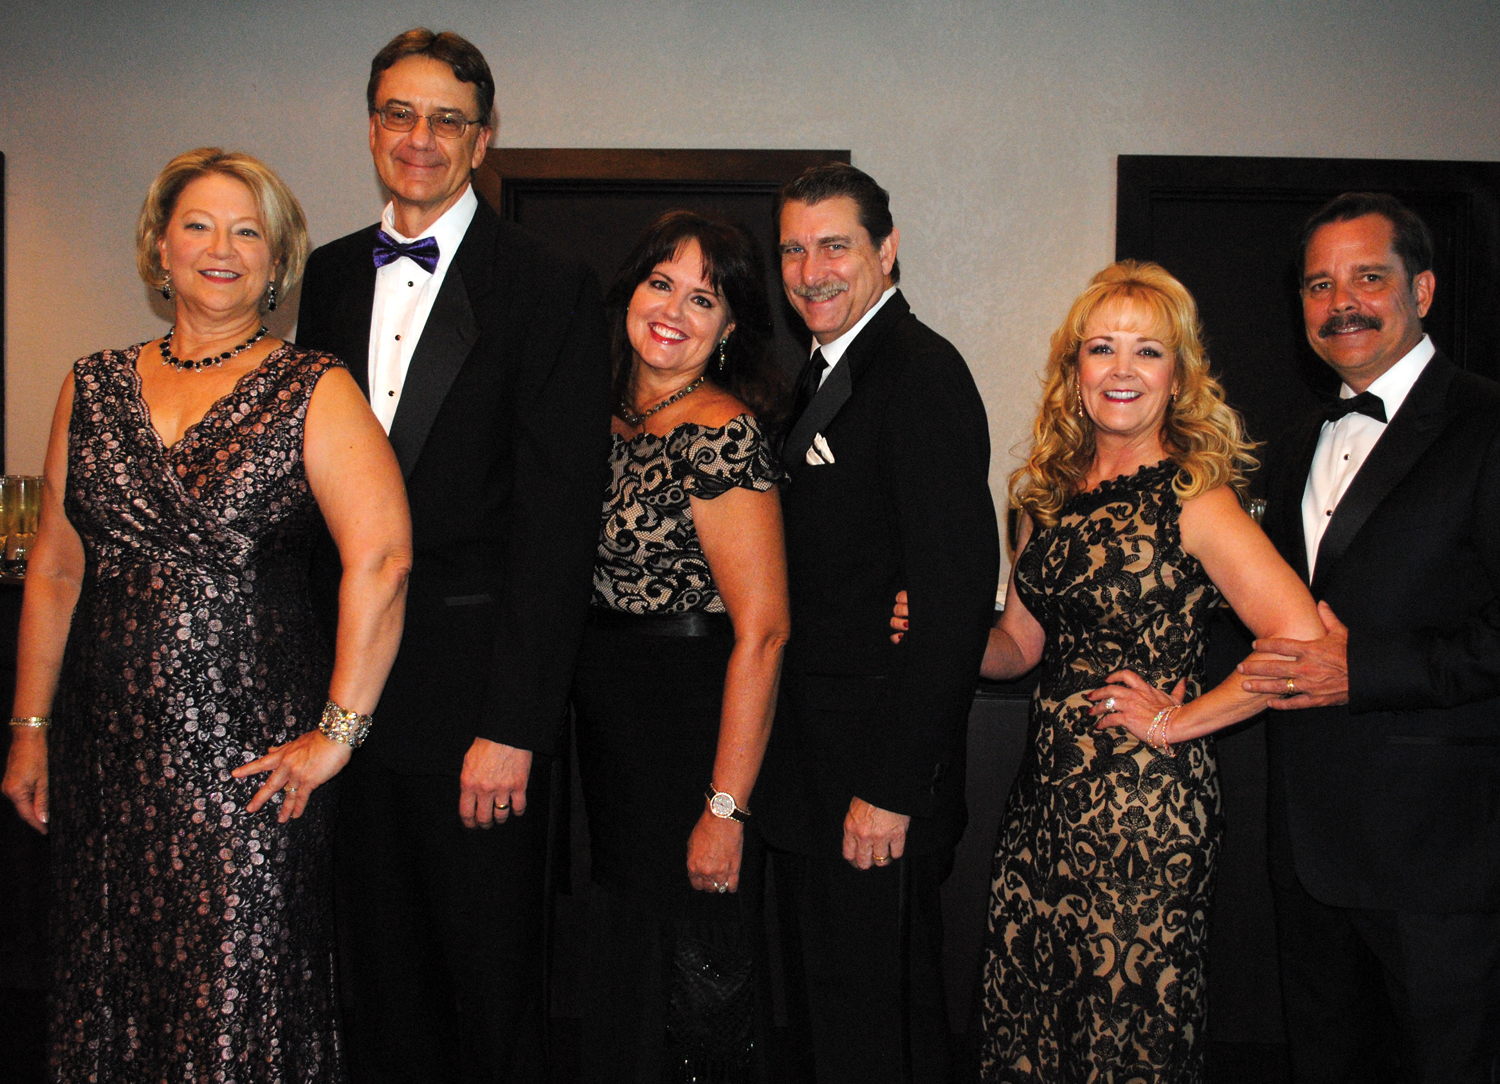 Jim and Diane Overman, Brian and Danette Spriggs and Ann and Kevin Brady, from left, are ready to party as they arrive at South Shore Harbour Resort for the Turning Point gala.